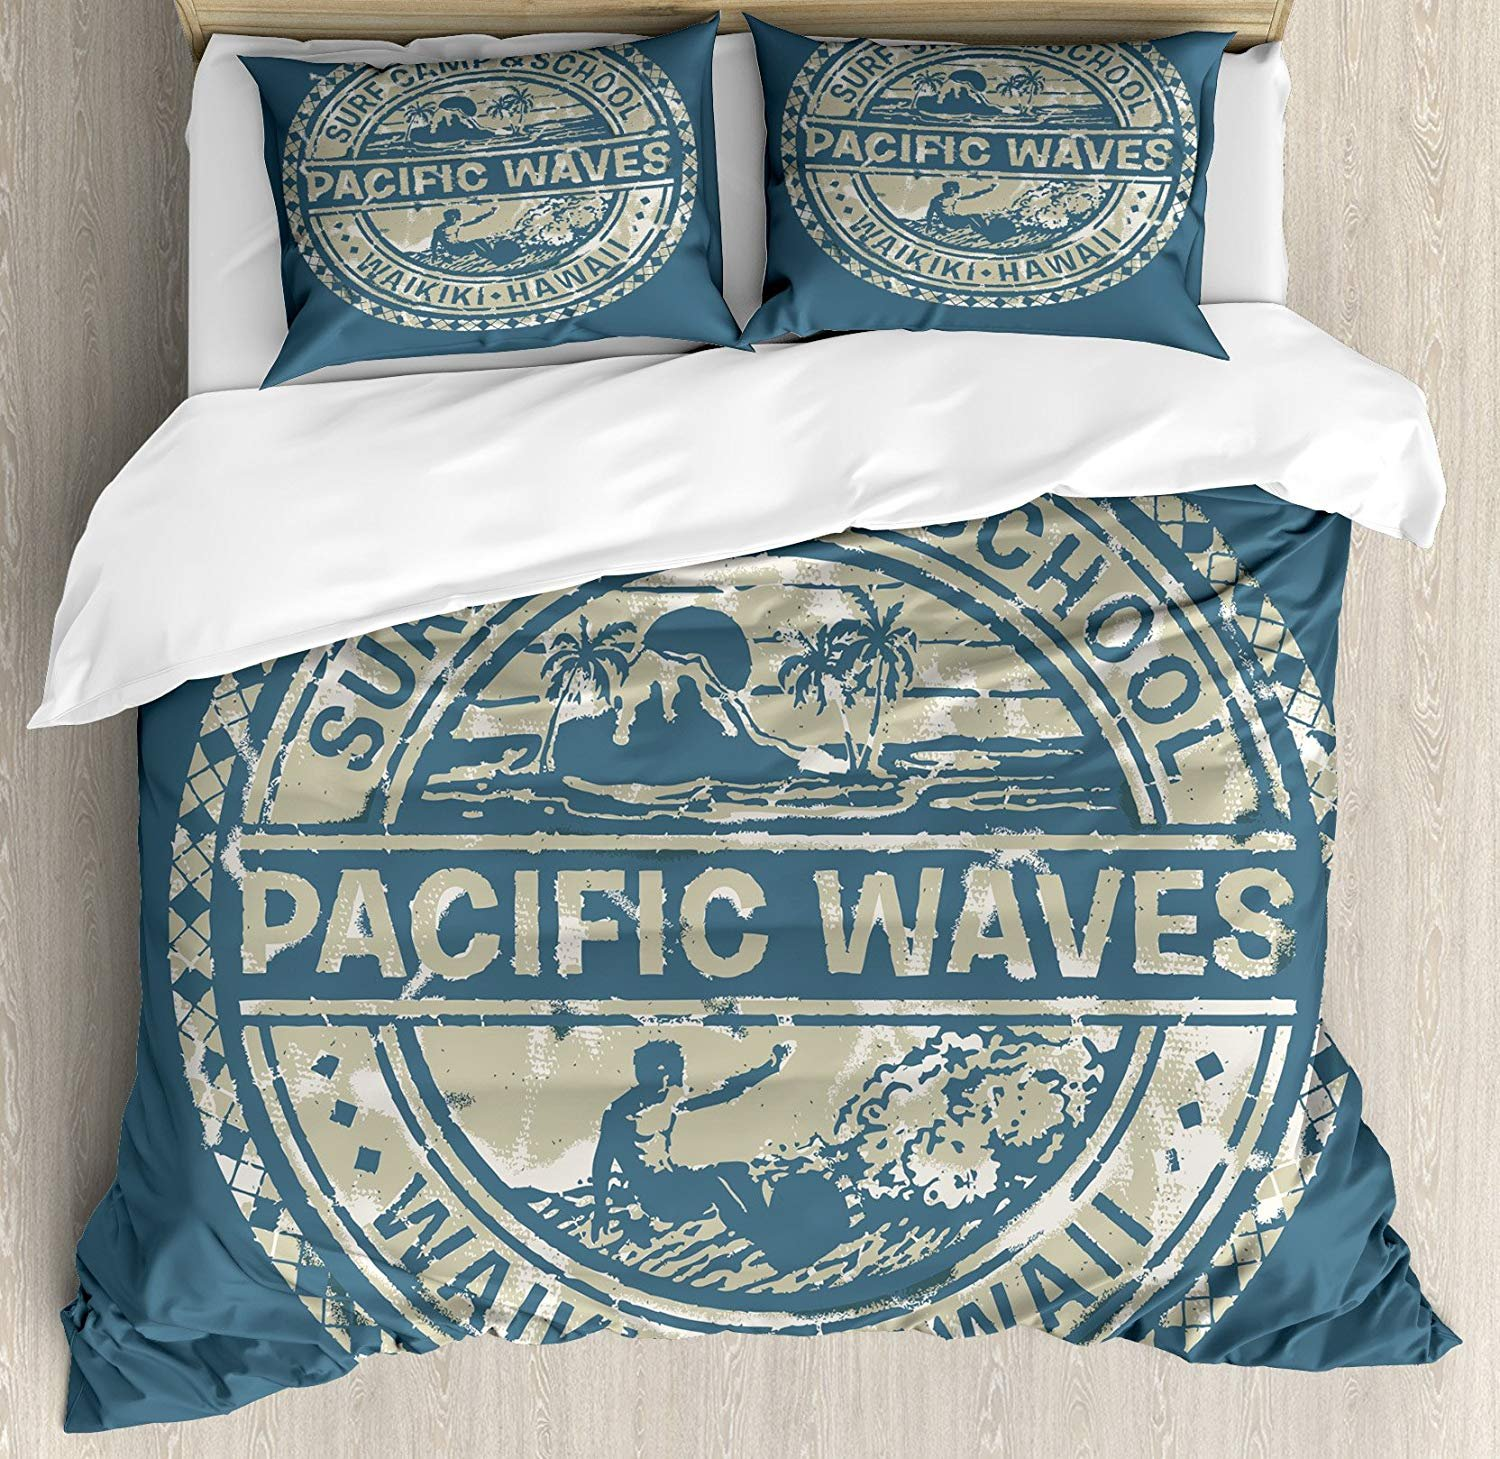 Anzona Full Size Modern 3 PCS Duvet Cover Set, Pacific Waves Surf Camp and School Hawaii Logo Motif with Artsy Effects Design, Bedding Set Bedspread for Children/Teens/Adults/Kids, Khaki Slate Blue